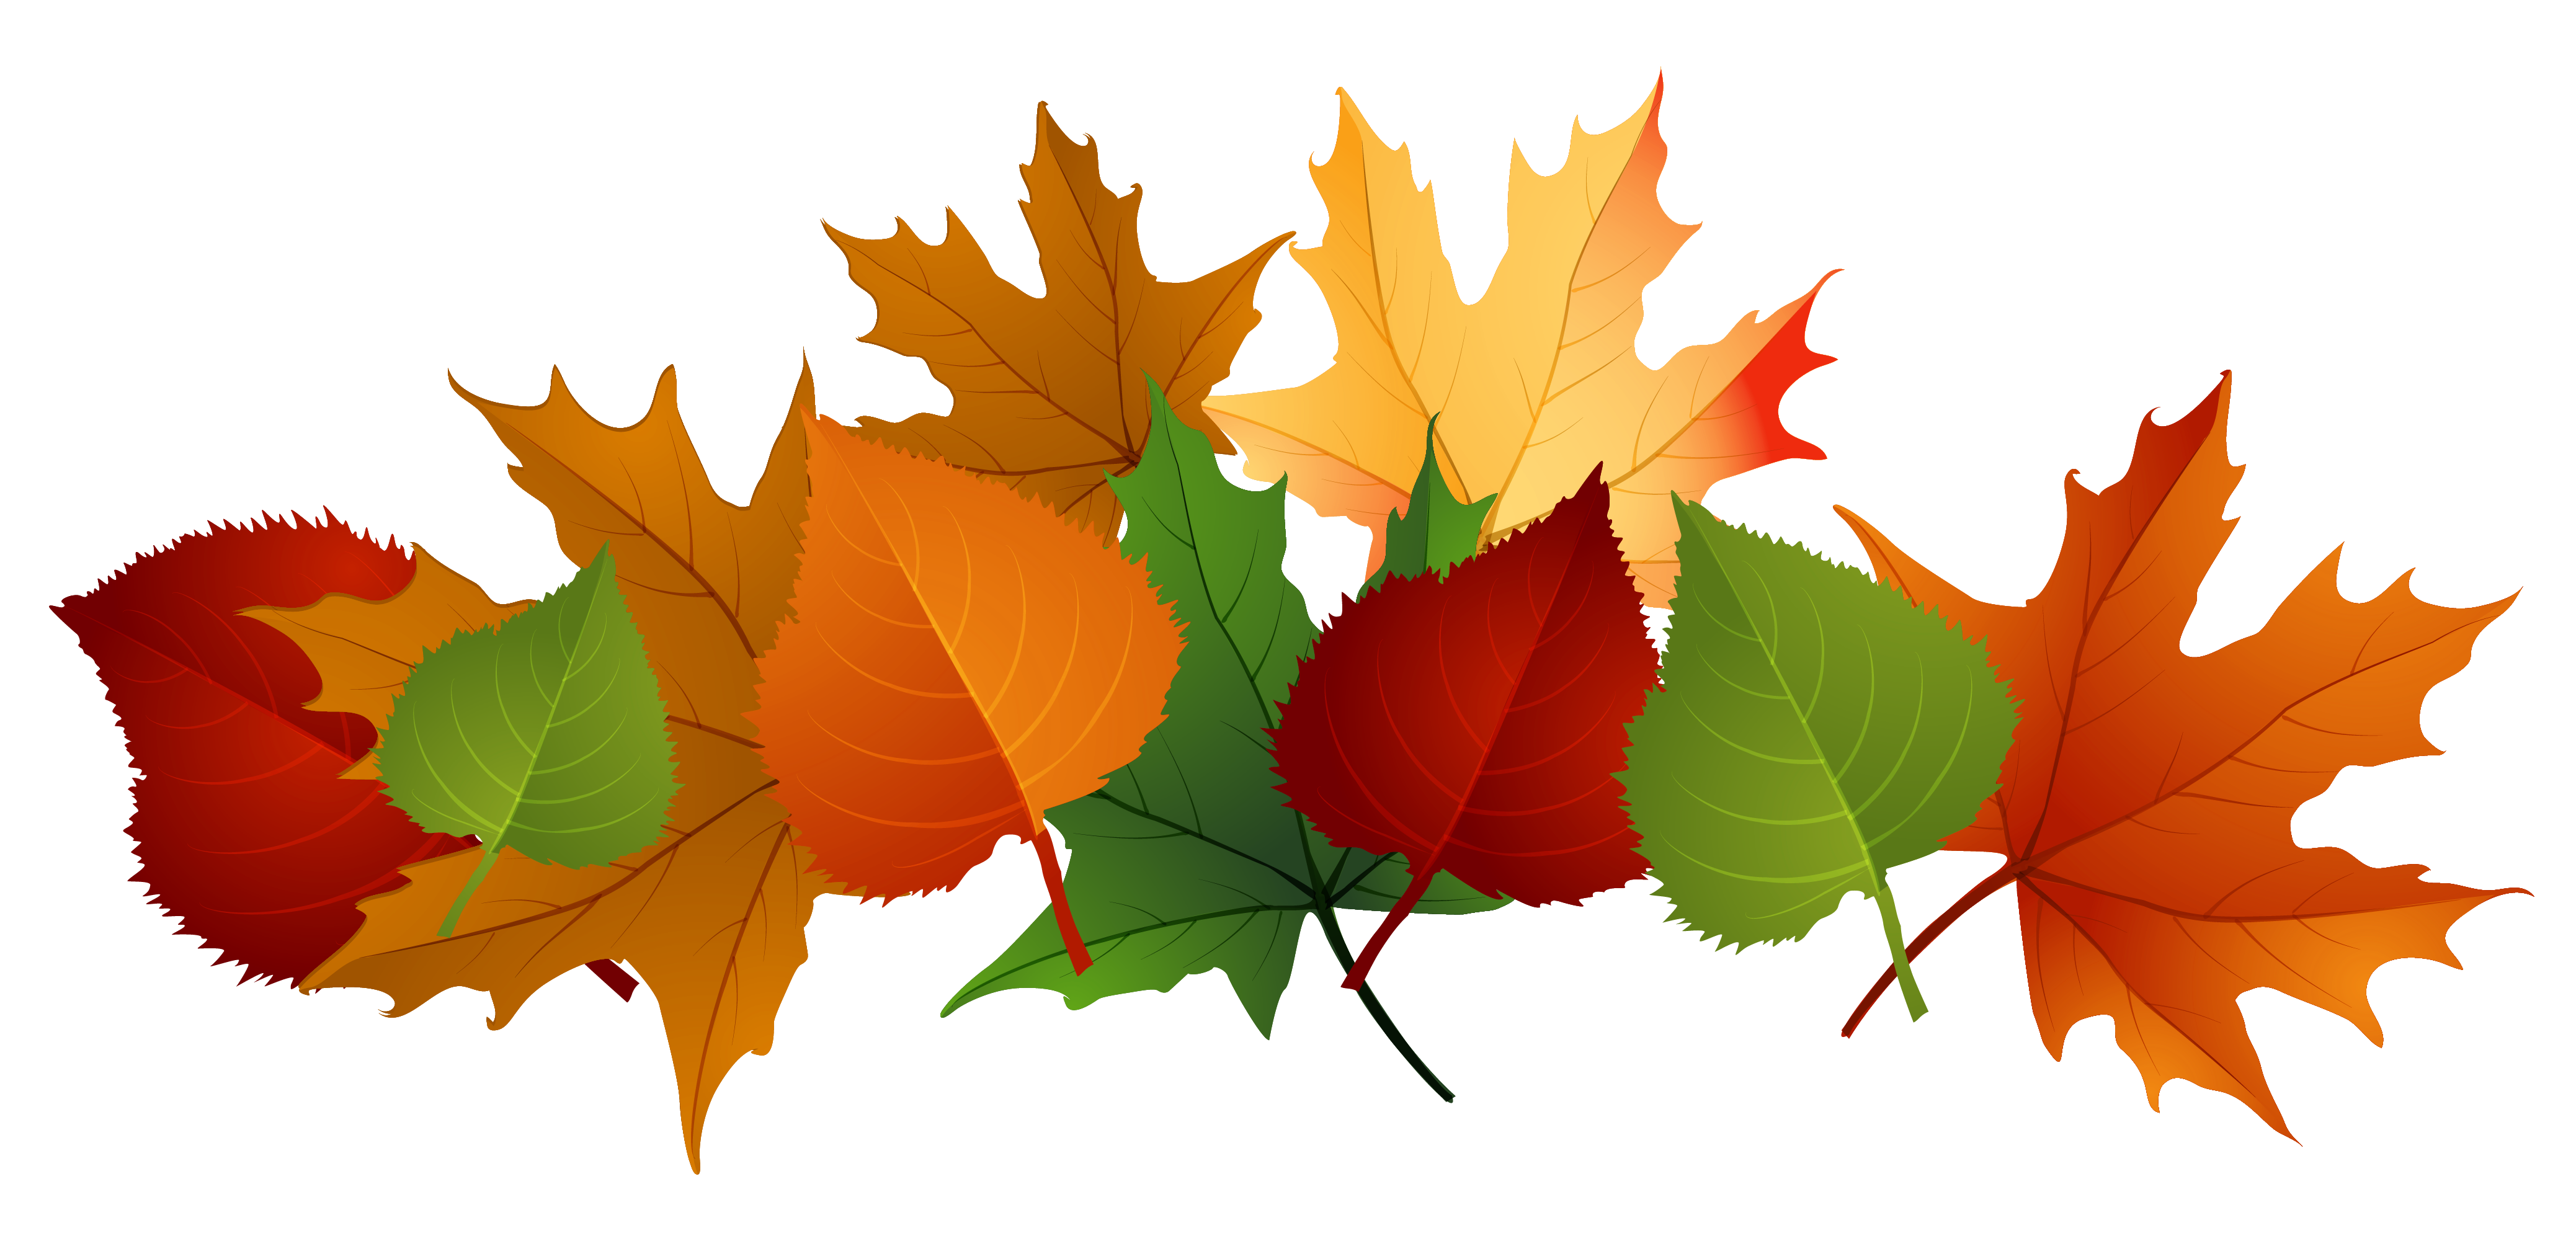 autumn leaves pile clip art fall leaves png picture clipart kid rh pinterest com autumn leaves clipart free autumn leaves clip art border